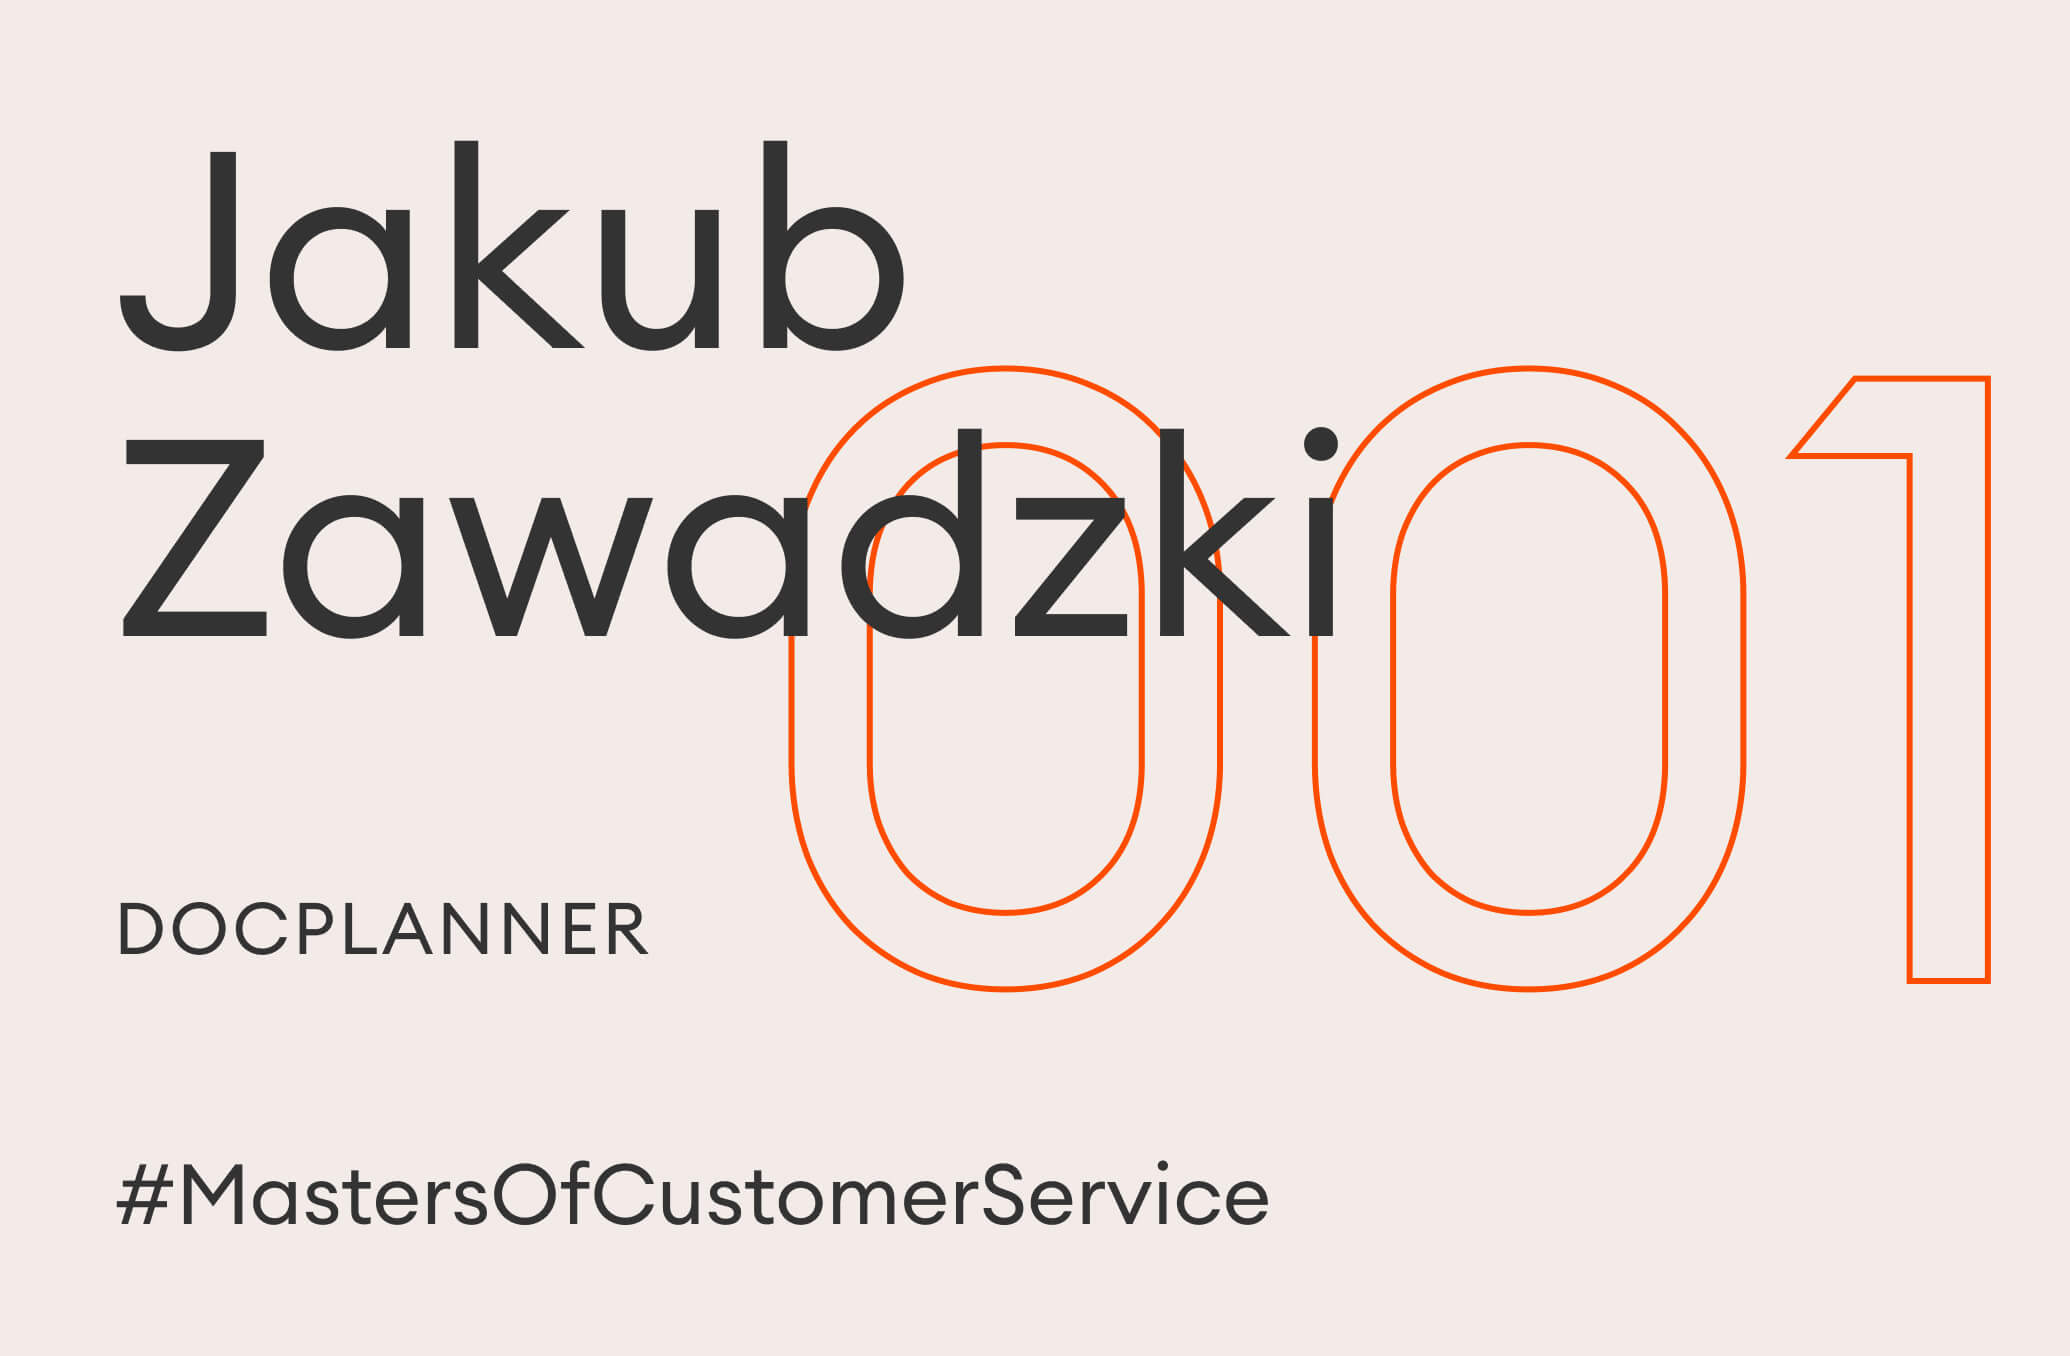 jakub zawadzki master of customer service